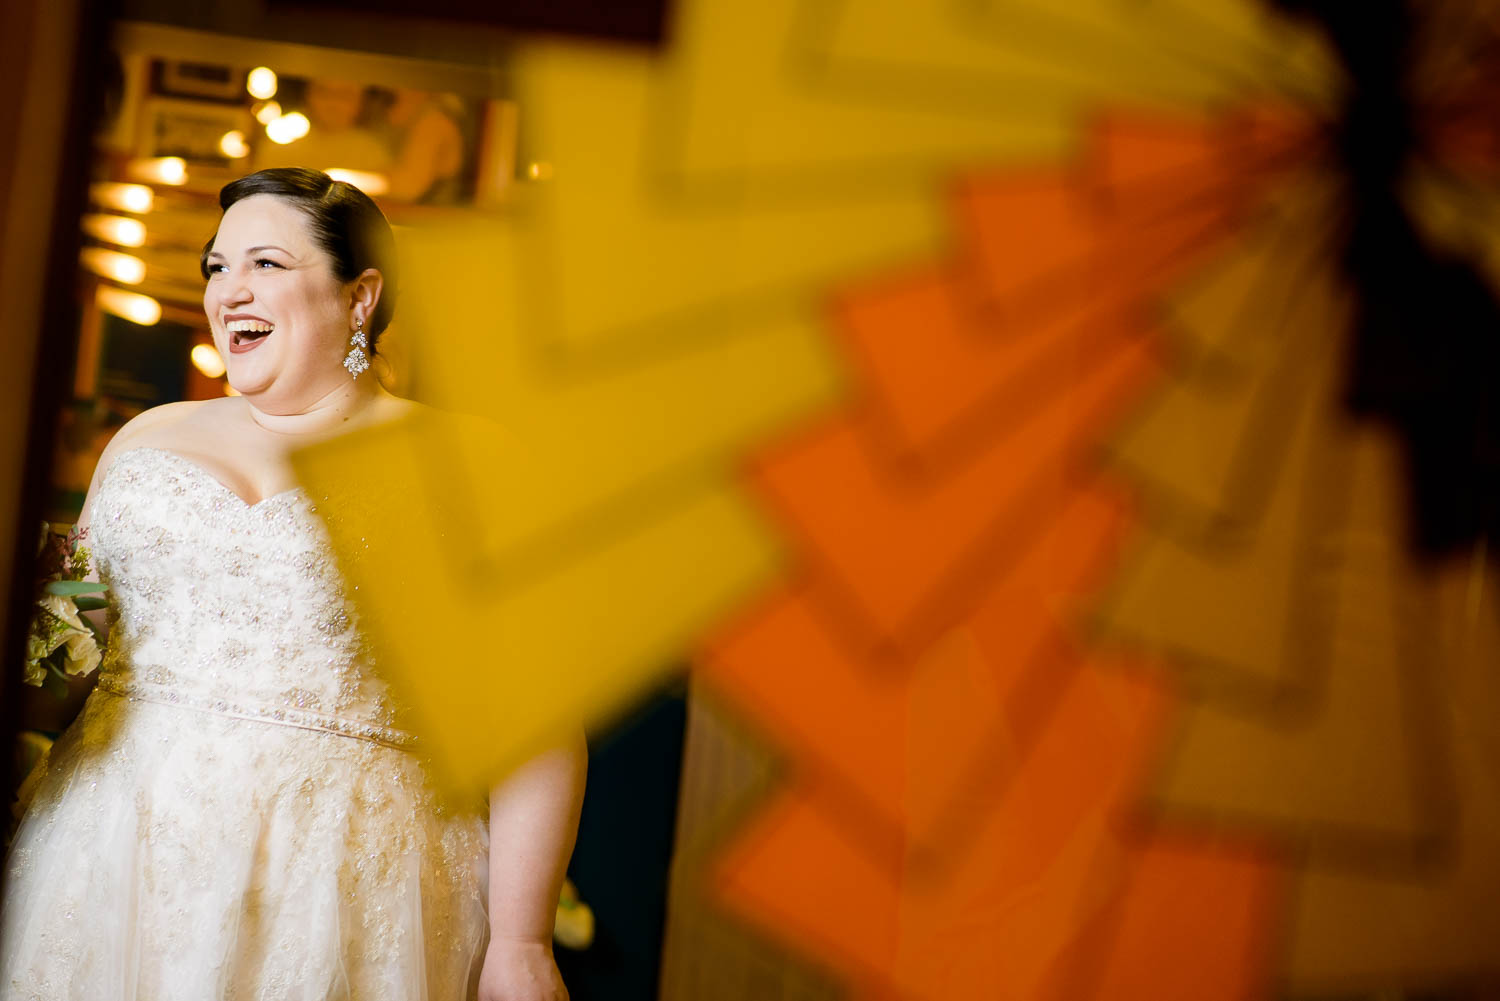 Creative portrait of the bride at Hotel Lincoln during a Chicago wedding.